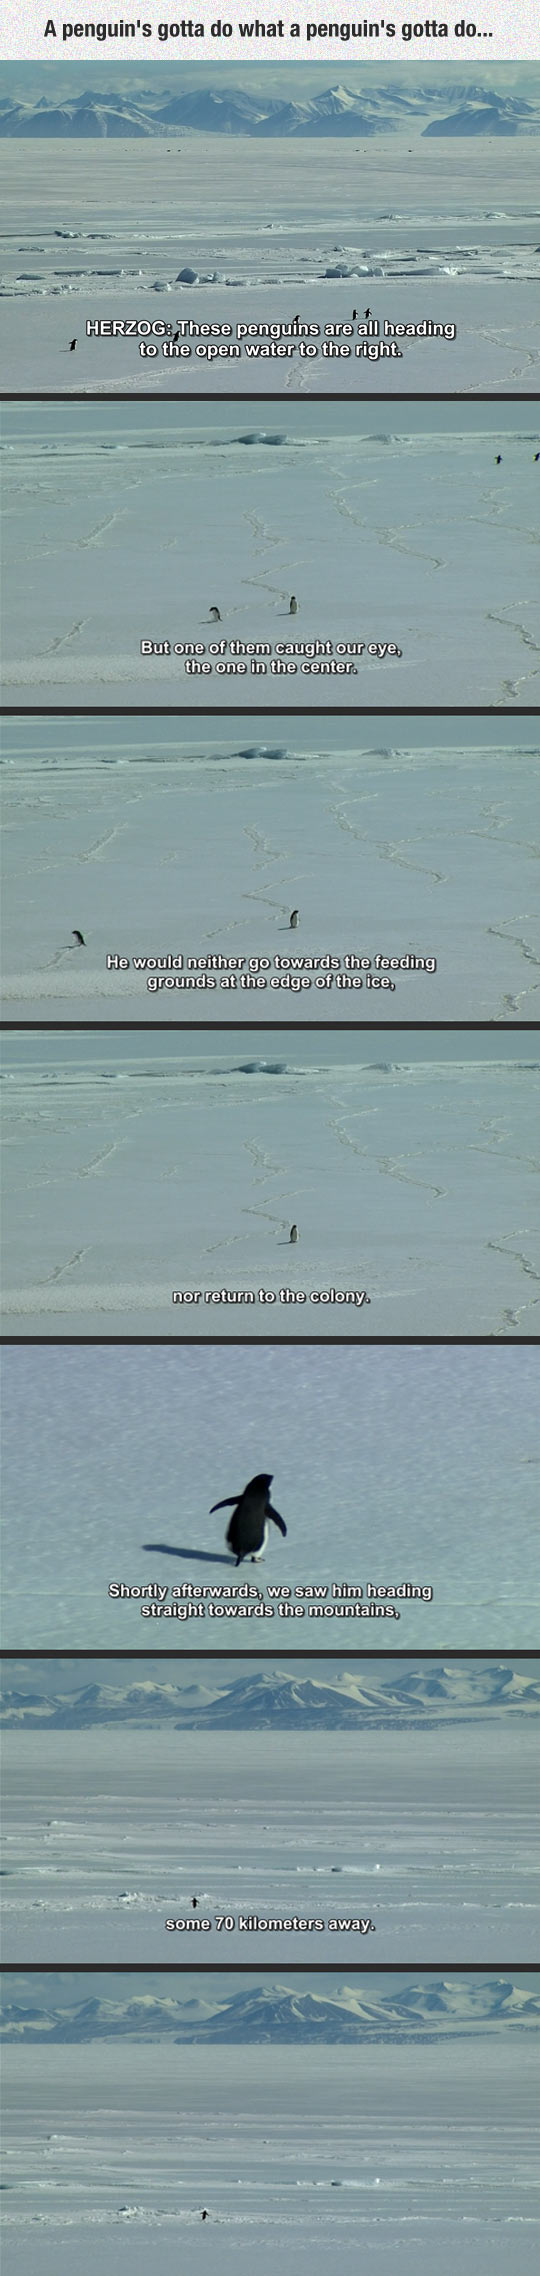 funny-penguin-ice-alone-Herzog